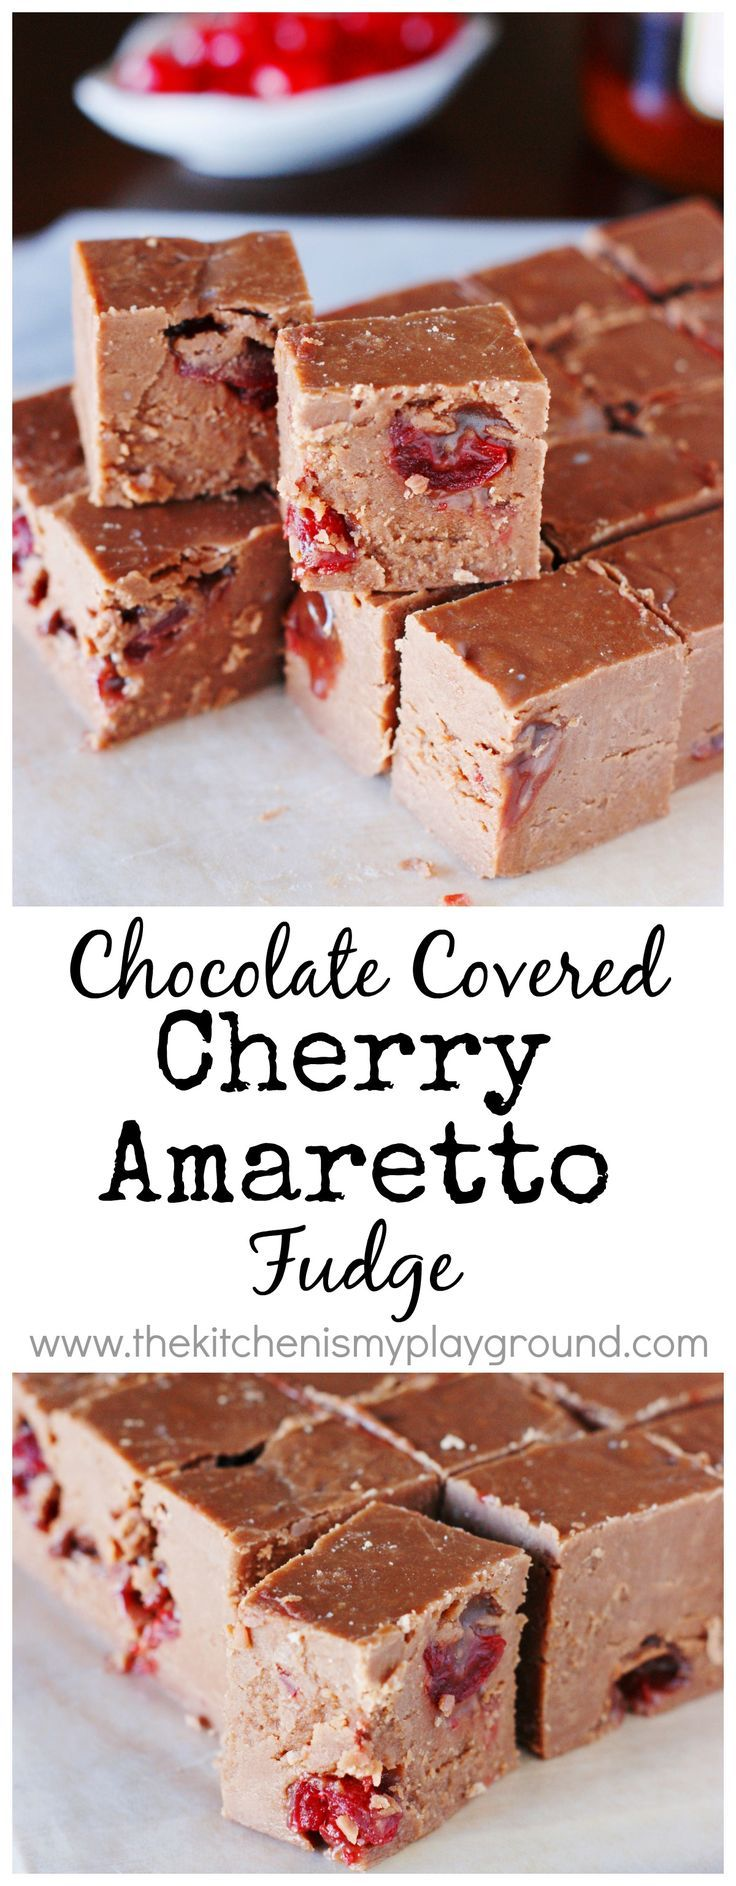 Chocolate Covered Cherry Amaretto Fudge ~ the wonderful flavors of chocolate, maraschino cherries, and Amaretto liqueur combine in this rich and delicious fudge. #Christmas #desserts #candy